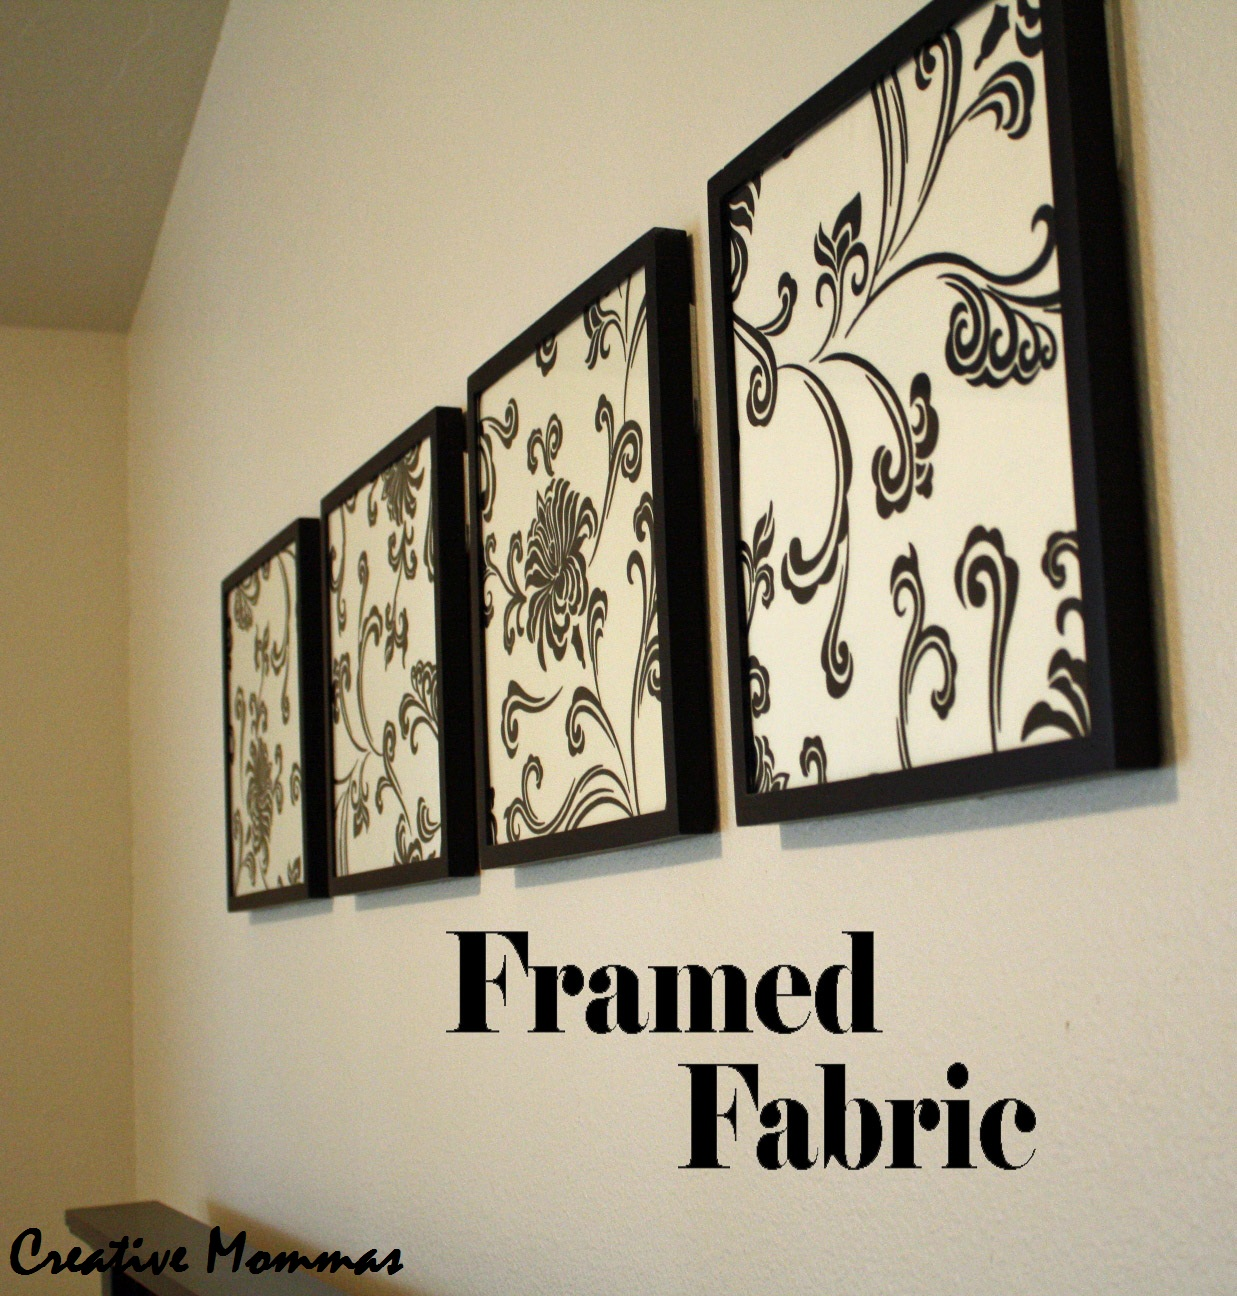 Creative mommas framed fabric wall decor for Fabric wall art